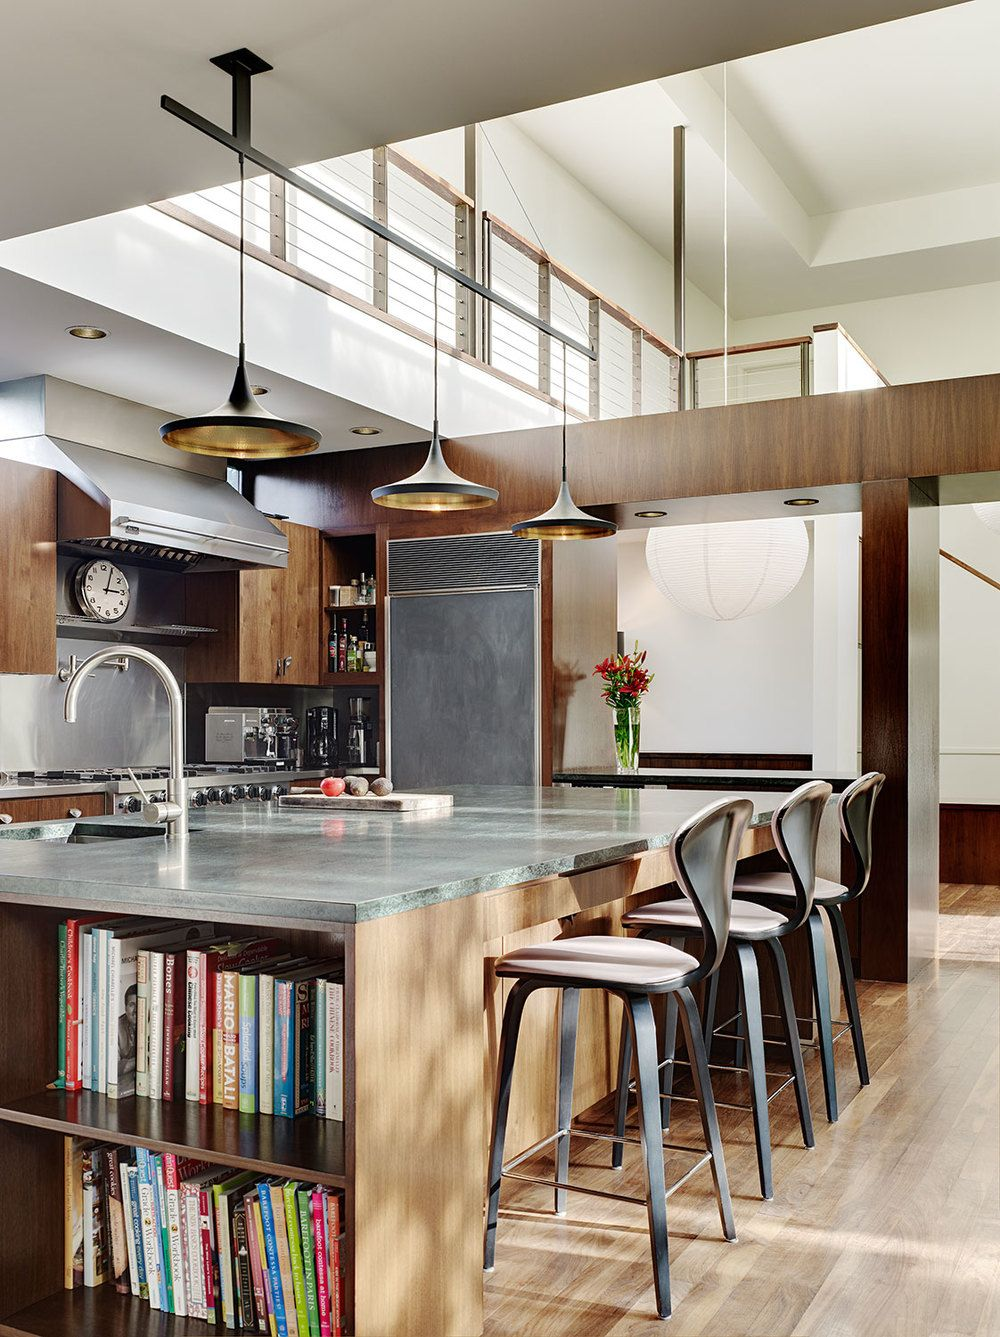 Best Modern Kitchen Design With Built In Island Book Shelf And 400 x 300